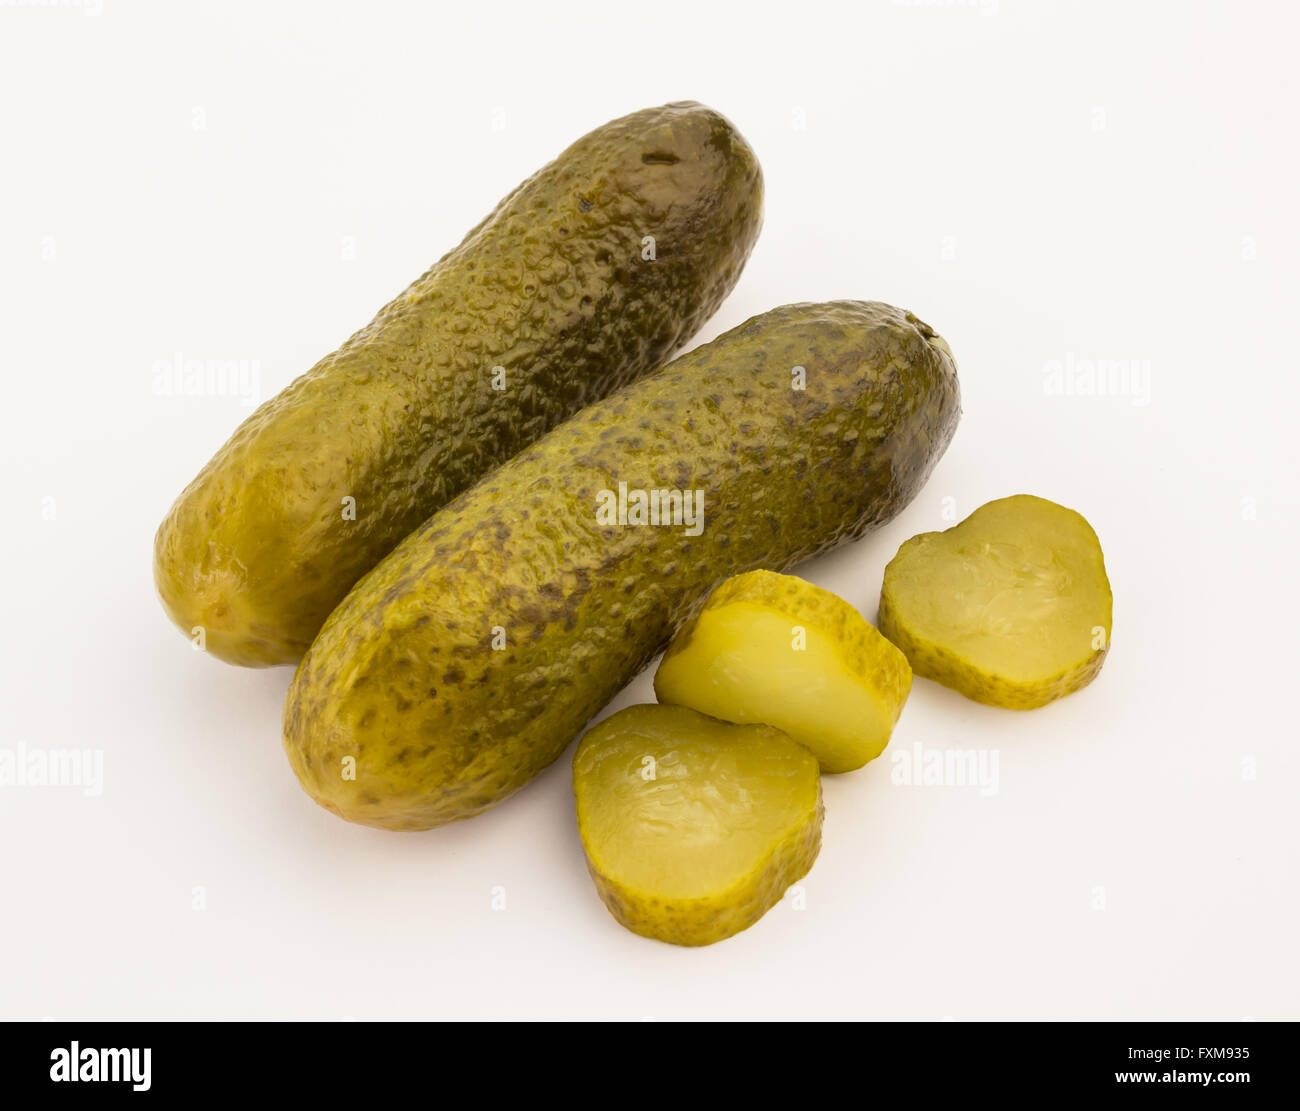 Close up of two pickles and slices isolated on white background - Stock Image